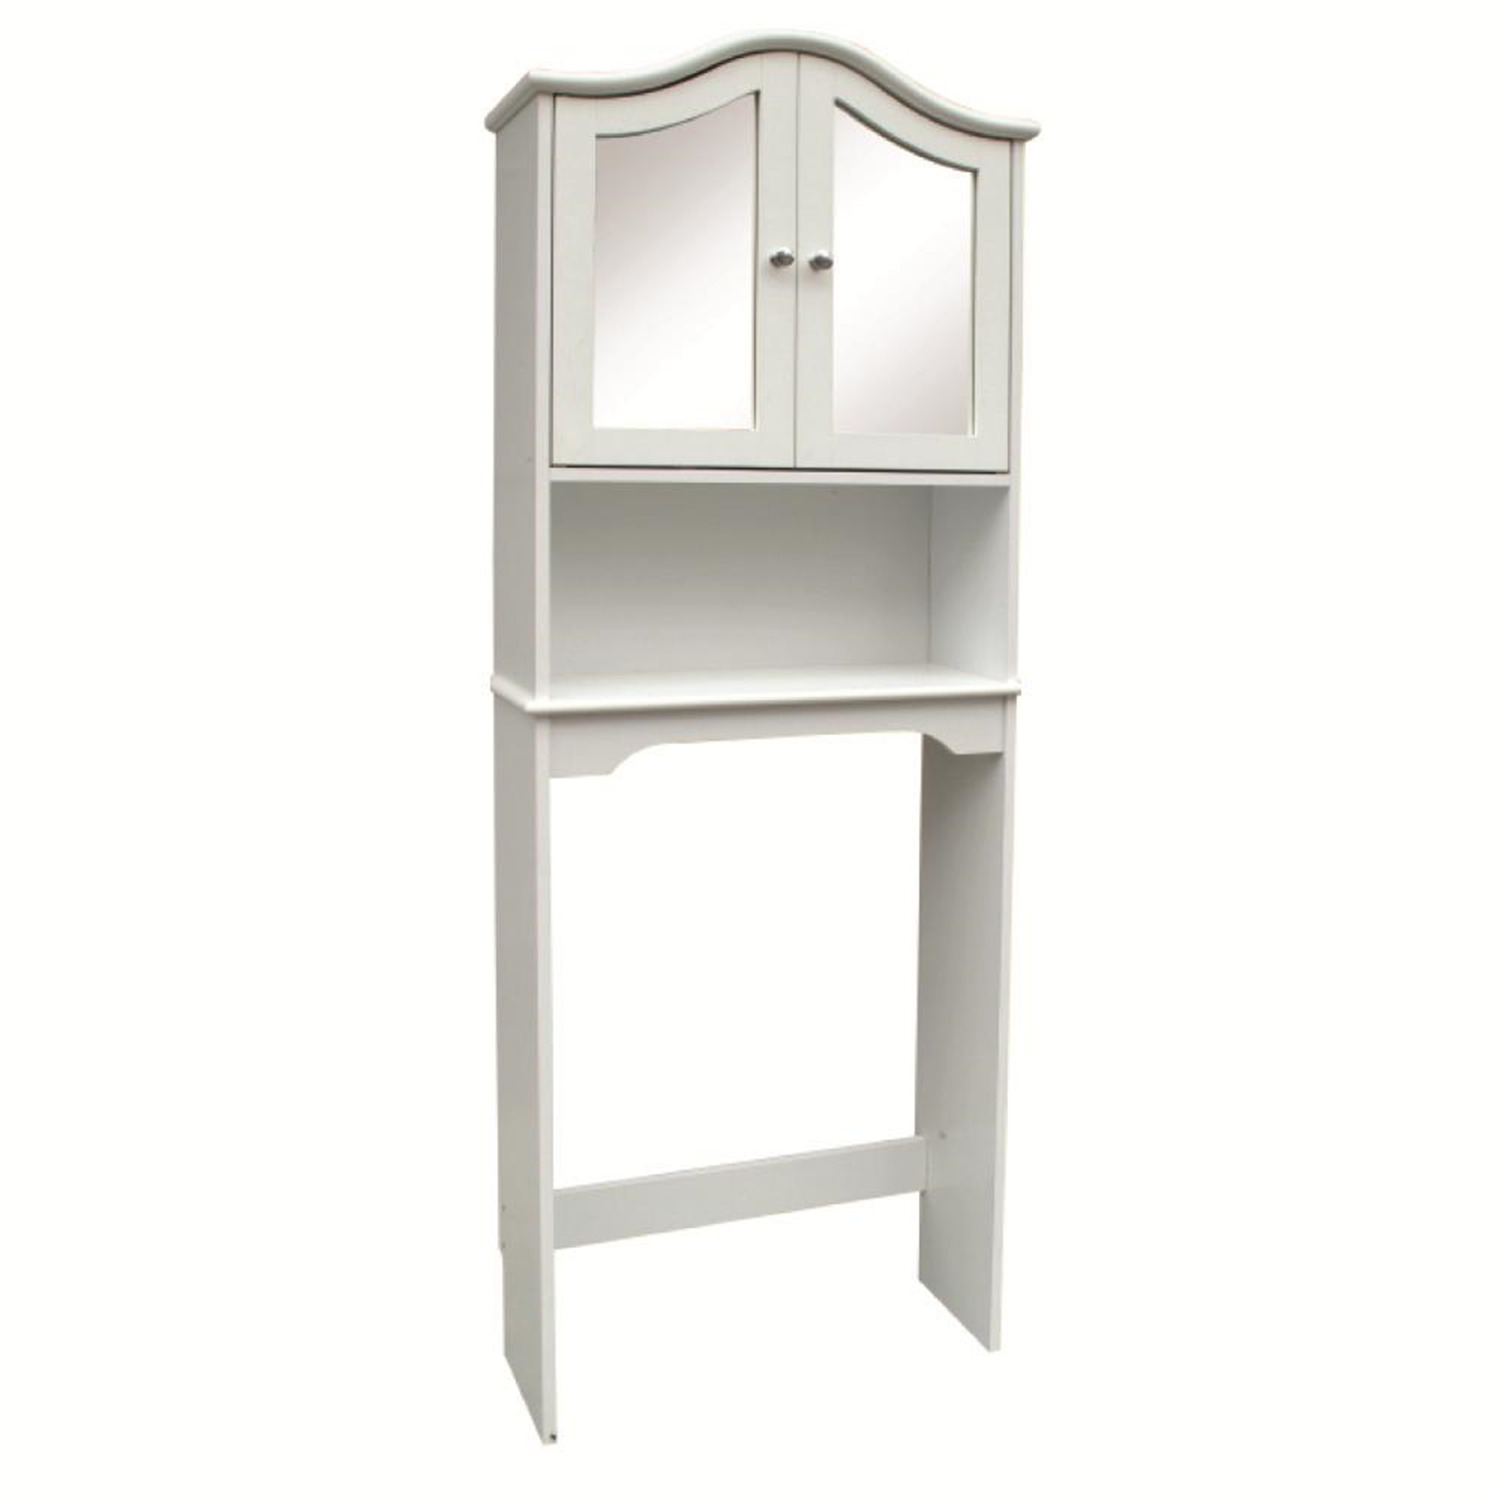 over the toilet bathroom storage cabinet shelves rack white pictures